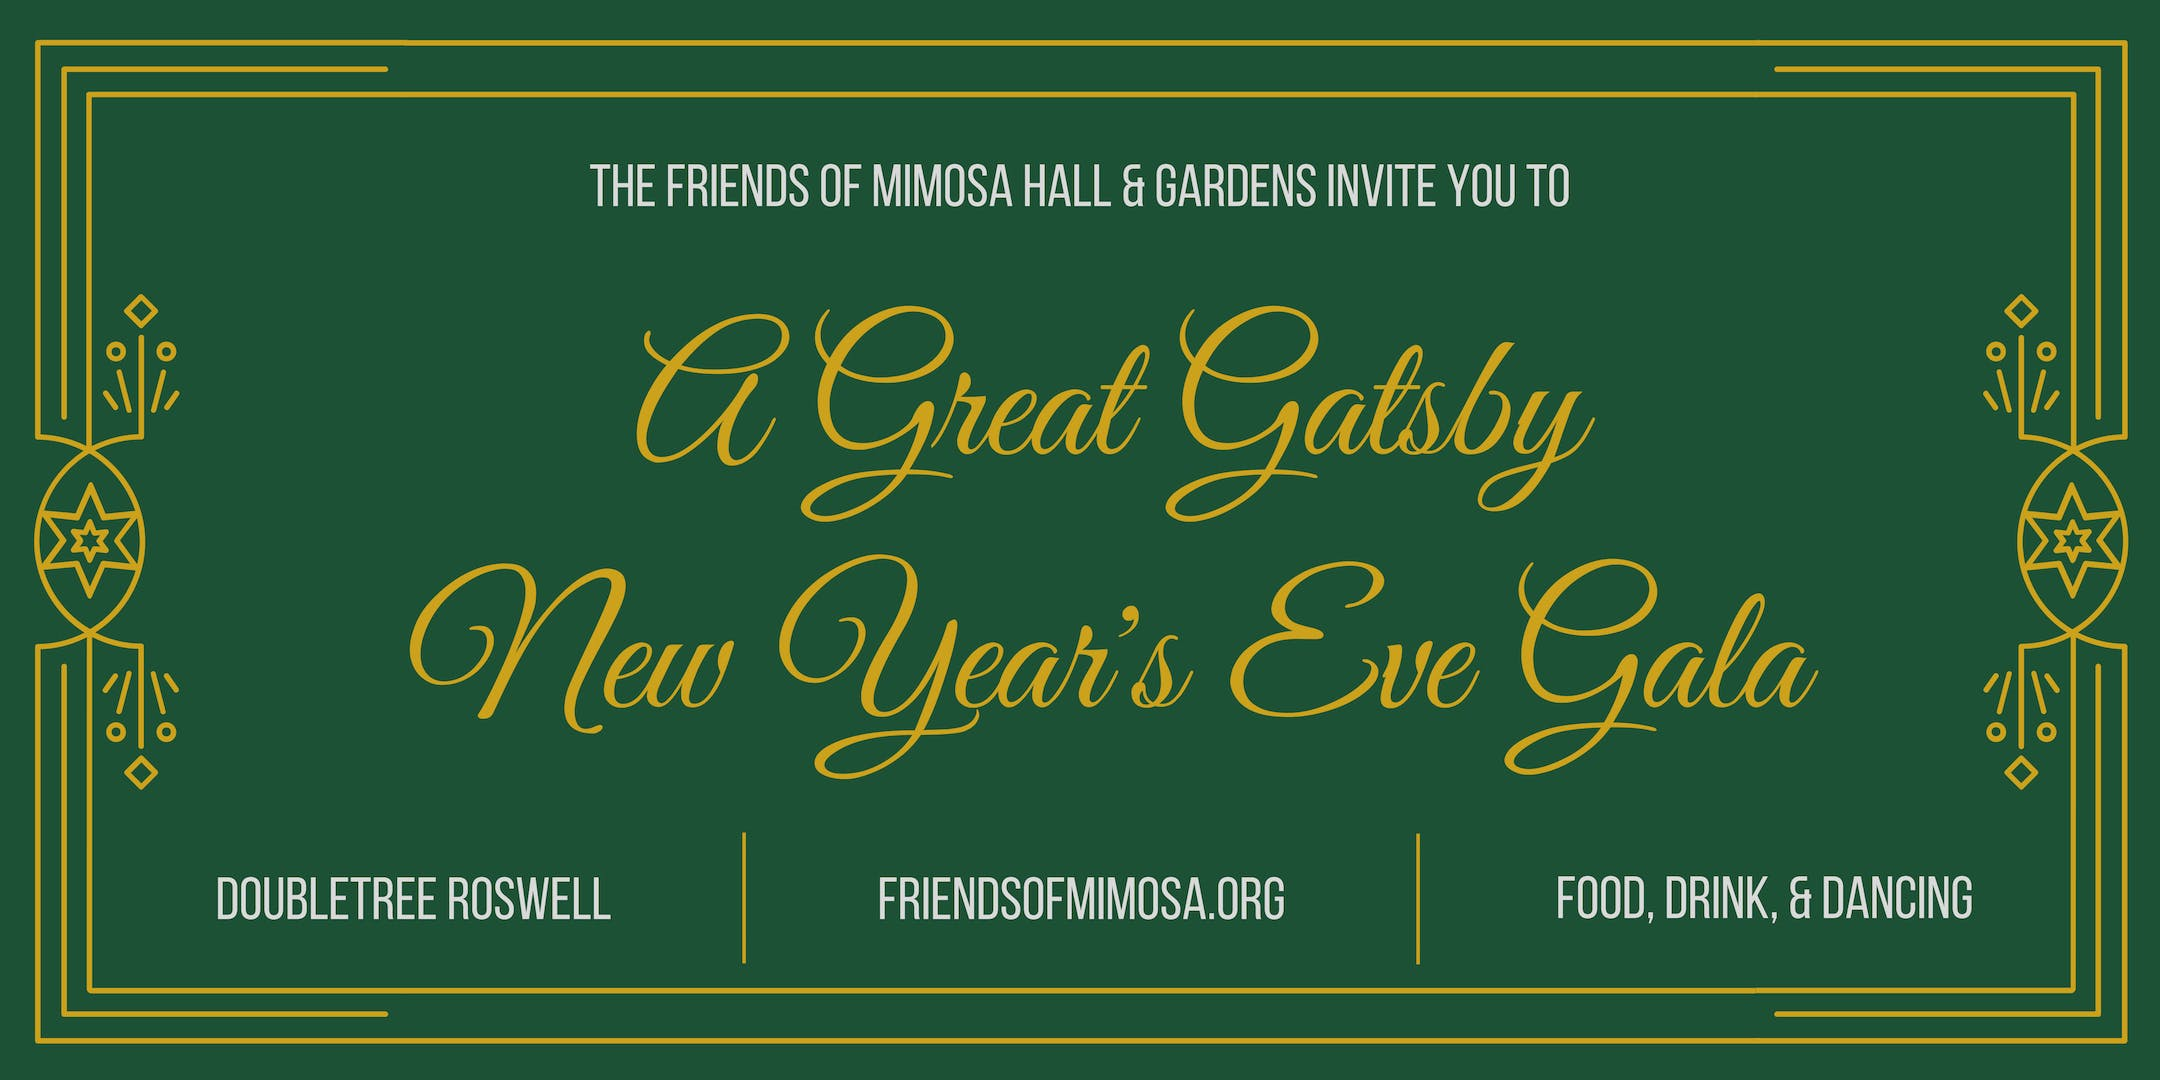 great gatsby new years eve 2019 gala